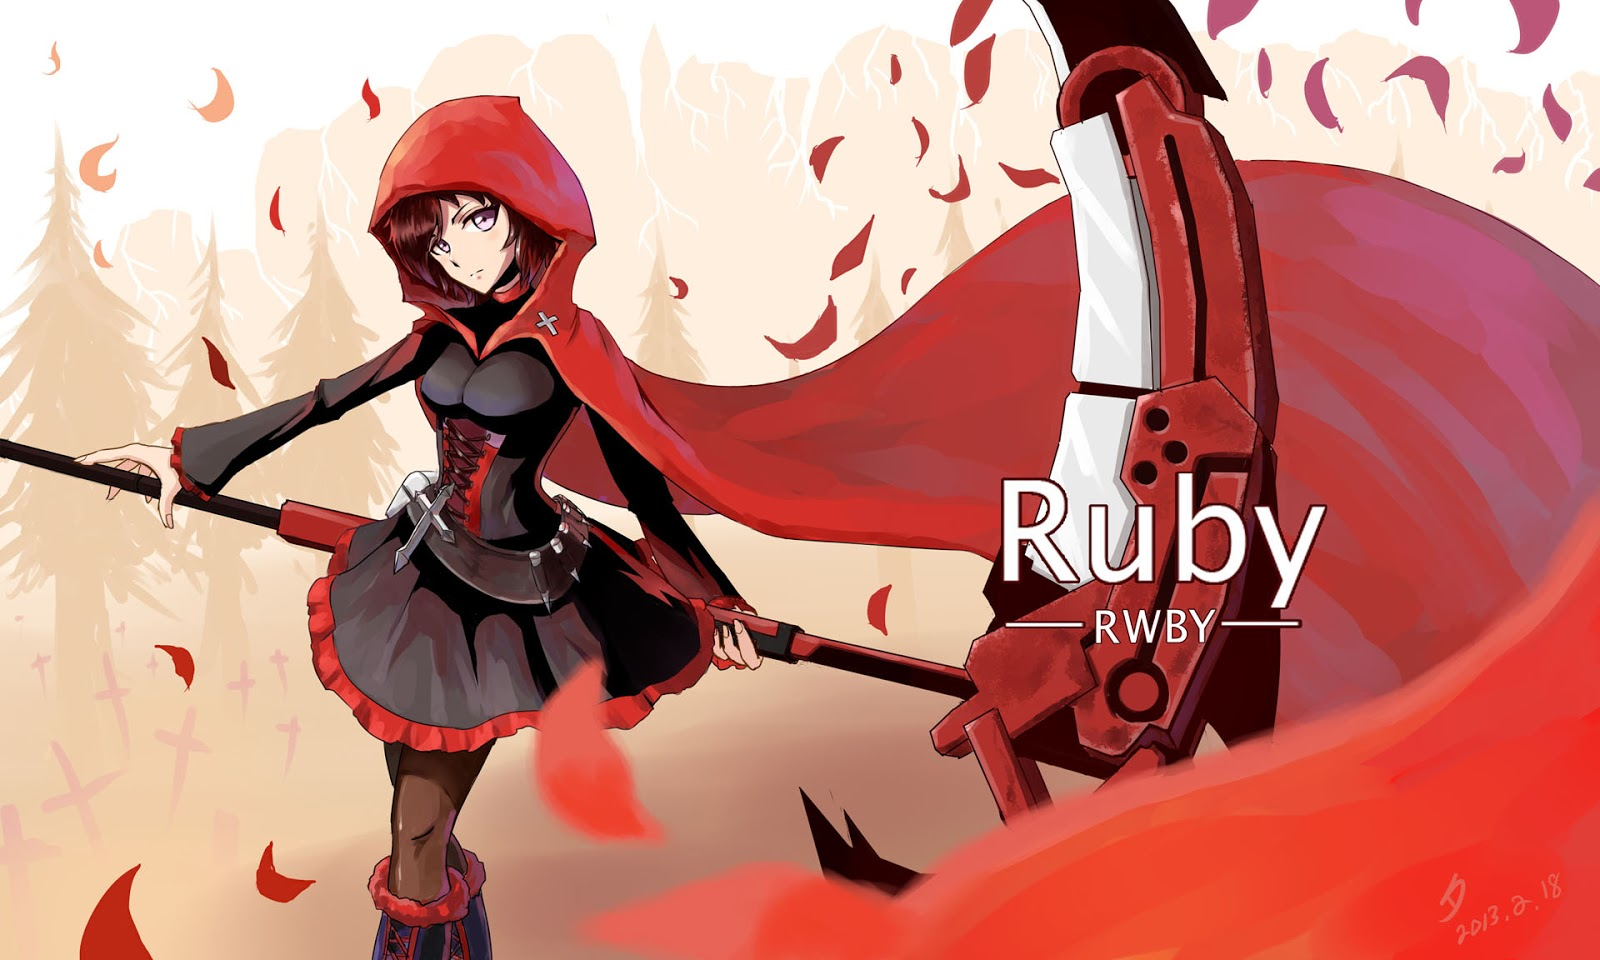 Cool RWBY Wallpapers - WallpaperSafari